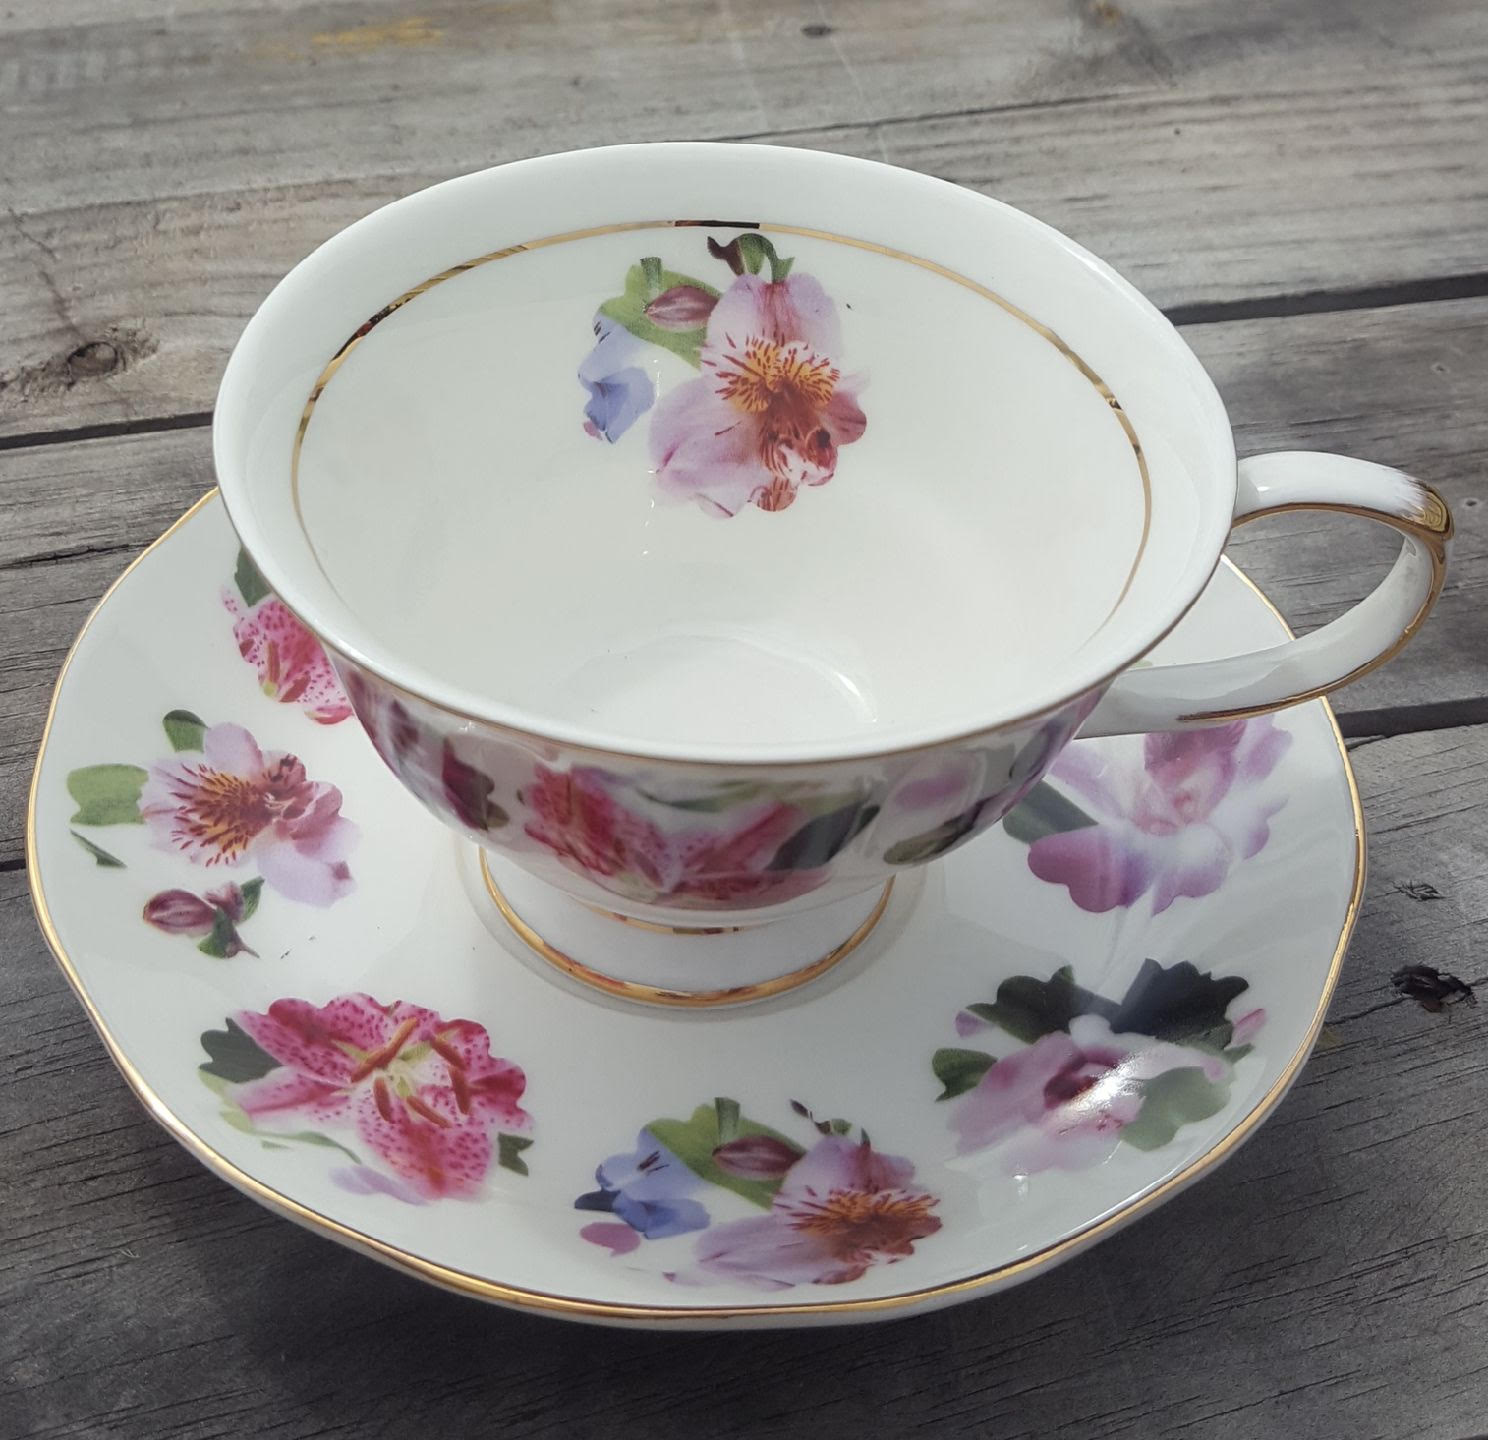 Lily Rainbow flower 2 Cup and Saucer set